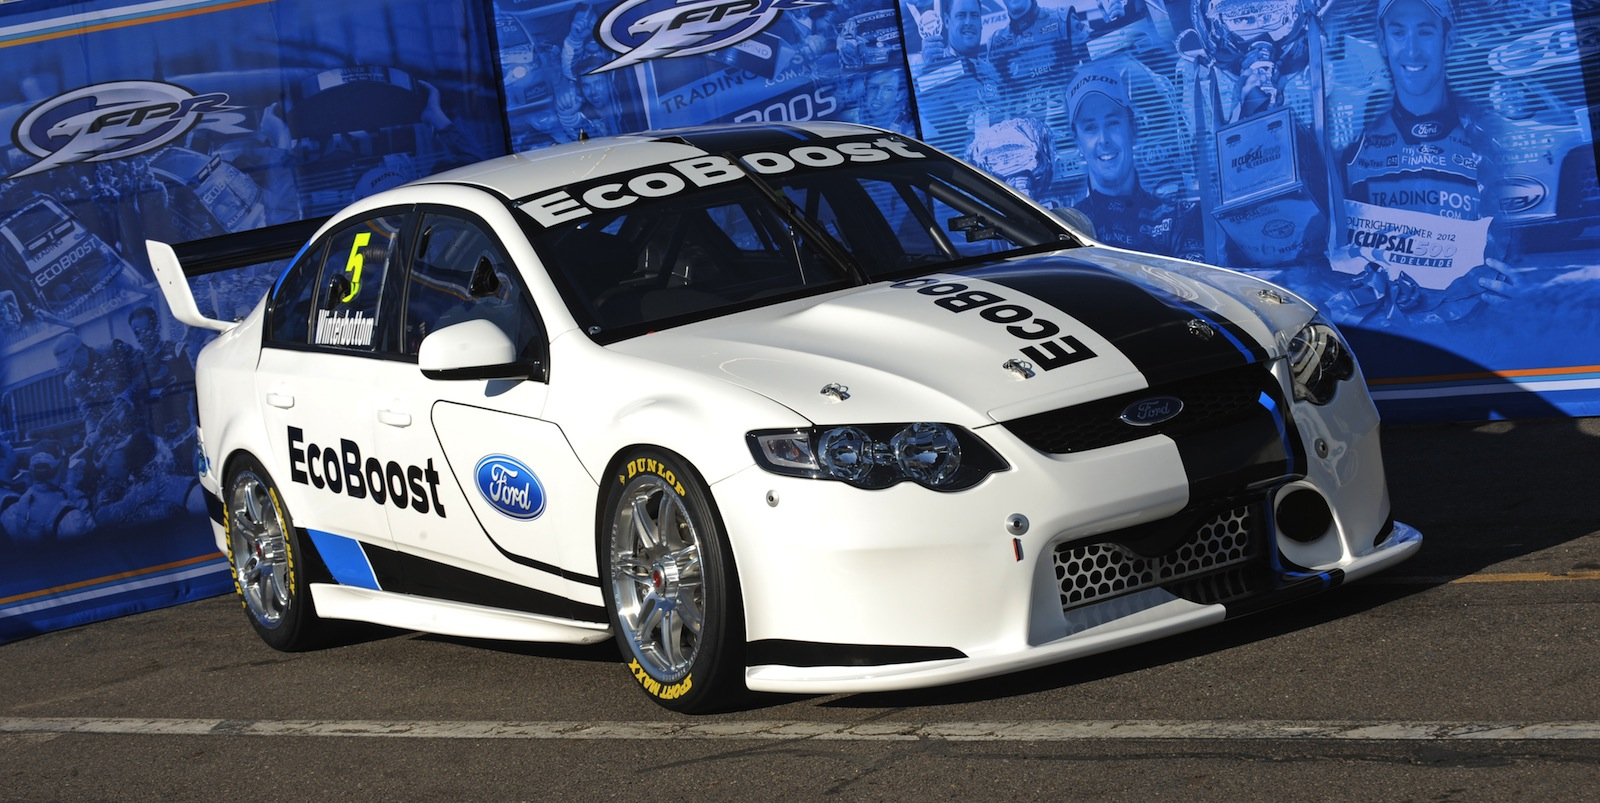 Ford Racing shows off new global motorsport livery ...